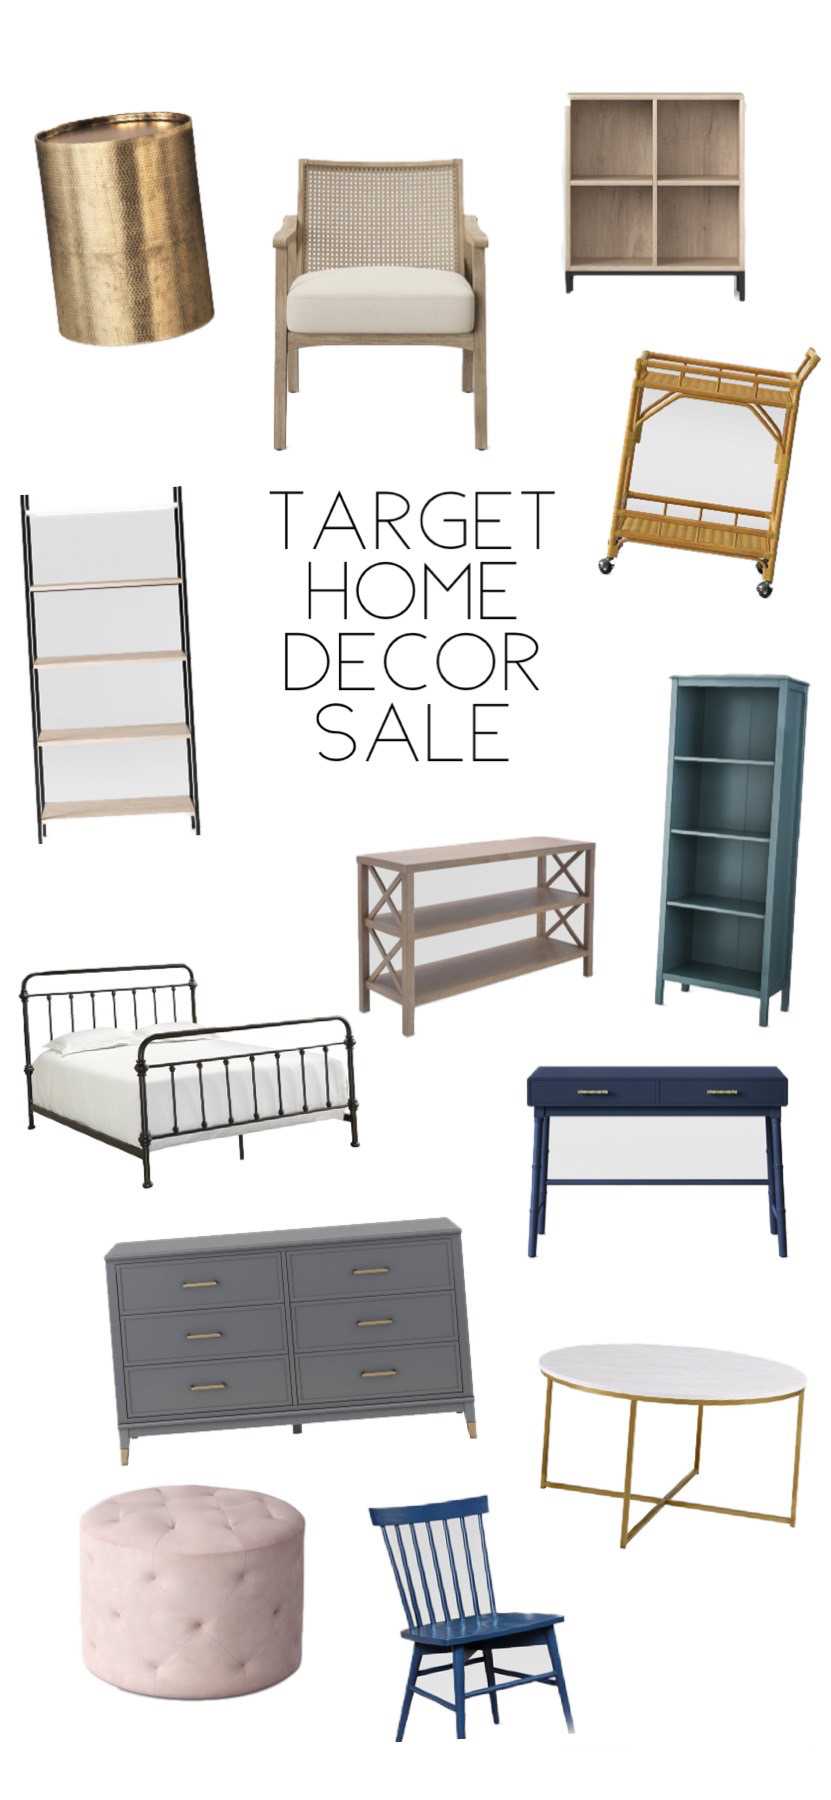 Save money on home decor items with this sale!